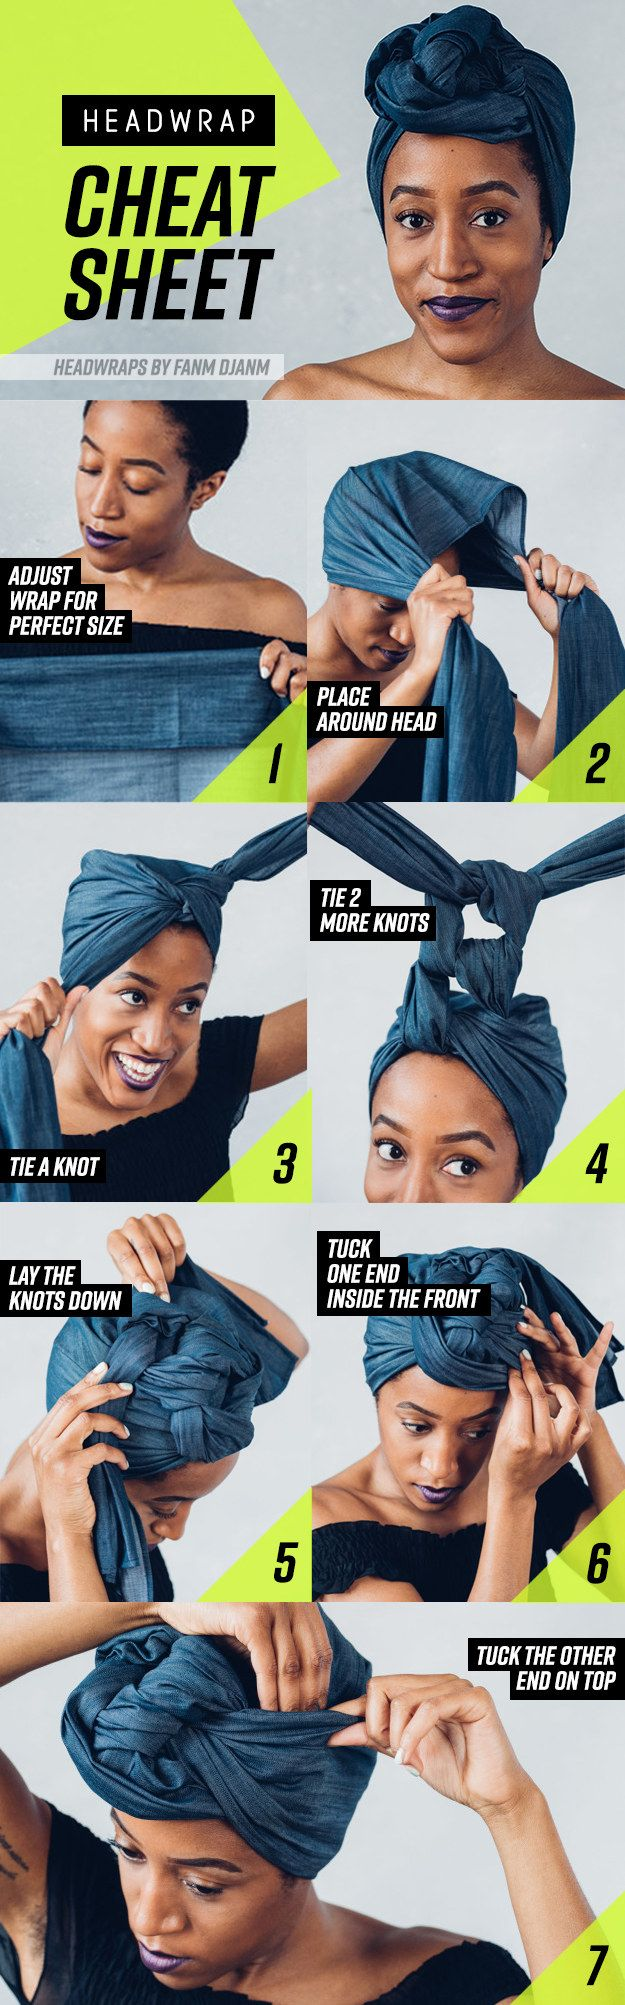 "<a href=""https://www.buzzfeed.com/patricepeck"">Patrice</a> here, one of the biggest hair chameleons you'll ever meet! Fly head wrap styles help keep my switch-up game strong."